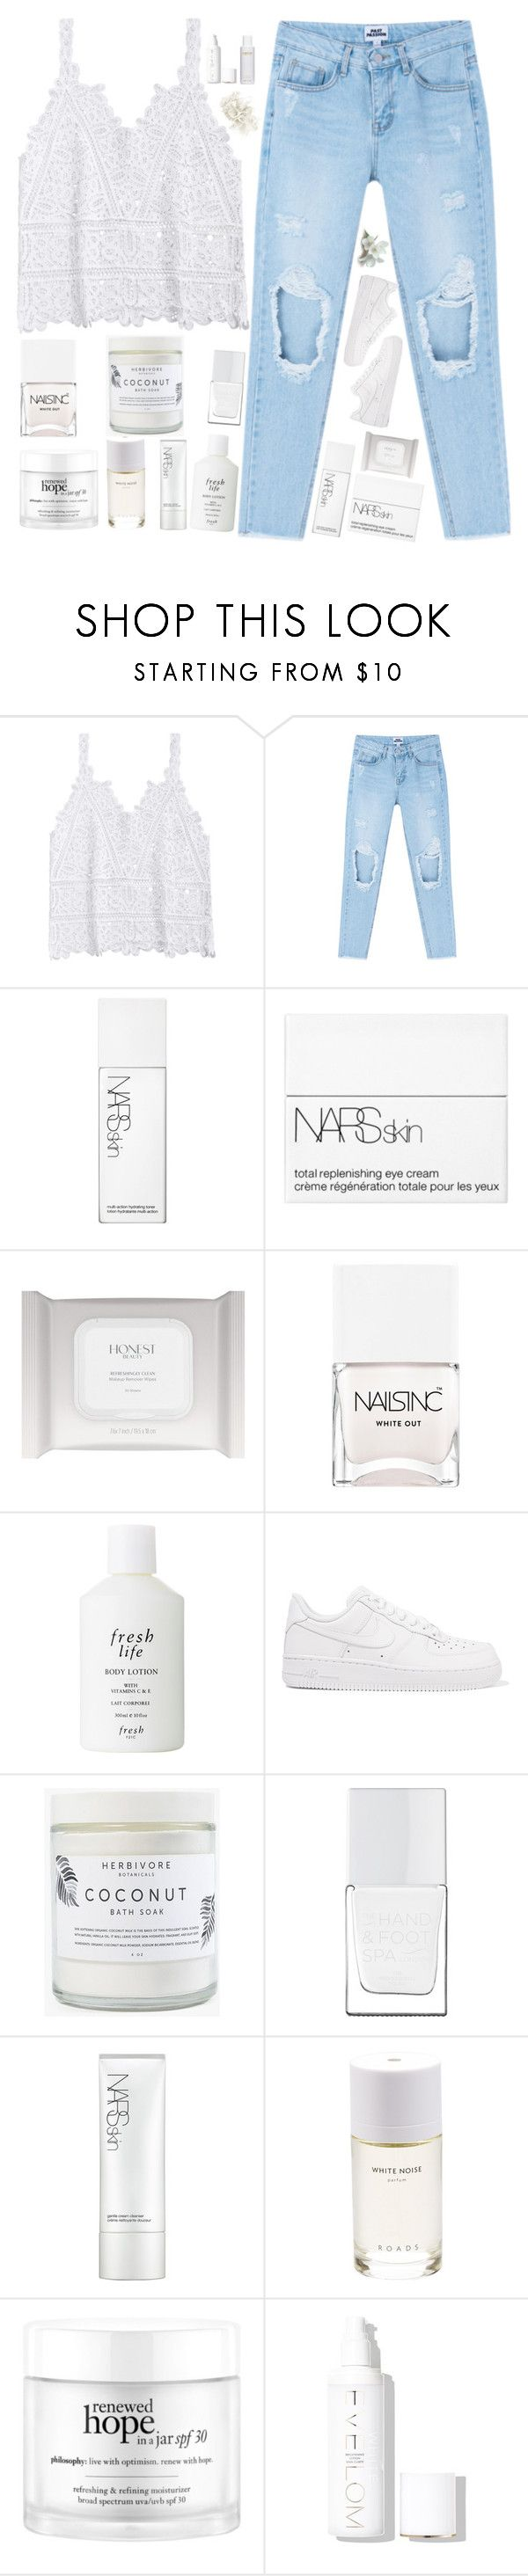 """""""Untitled #307"""" by fashionqueen14871 ❤ liked on Polyvore featuring NARS Cosmetics, Honest Beauty, Nails Inc., Fresh, NIKE, Herbivore, The Hand & Foot Spa, Roads, philosophy and Eve Lom"""